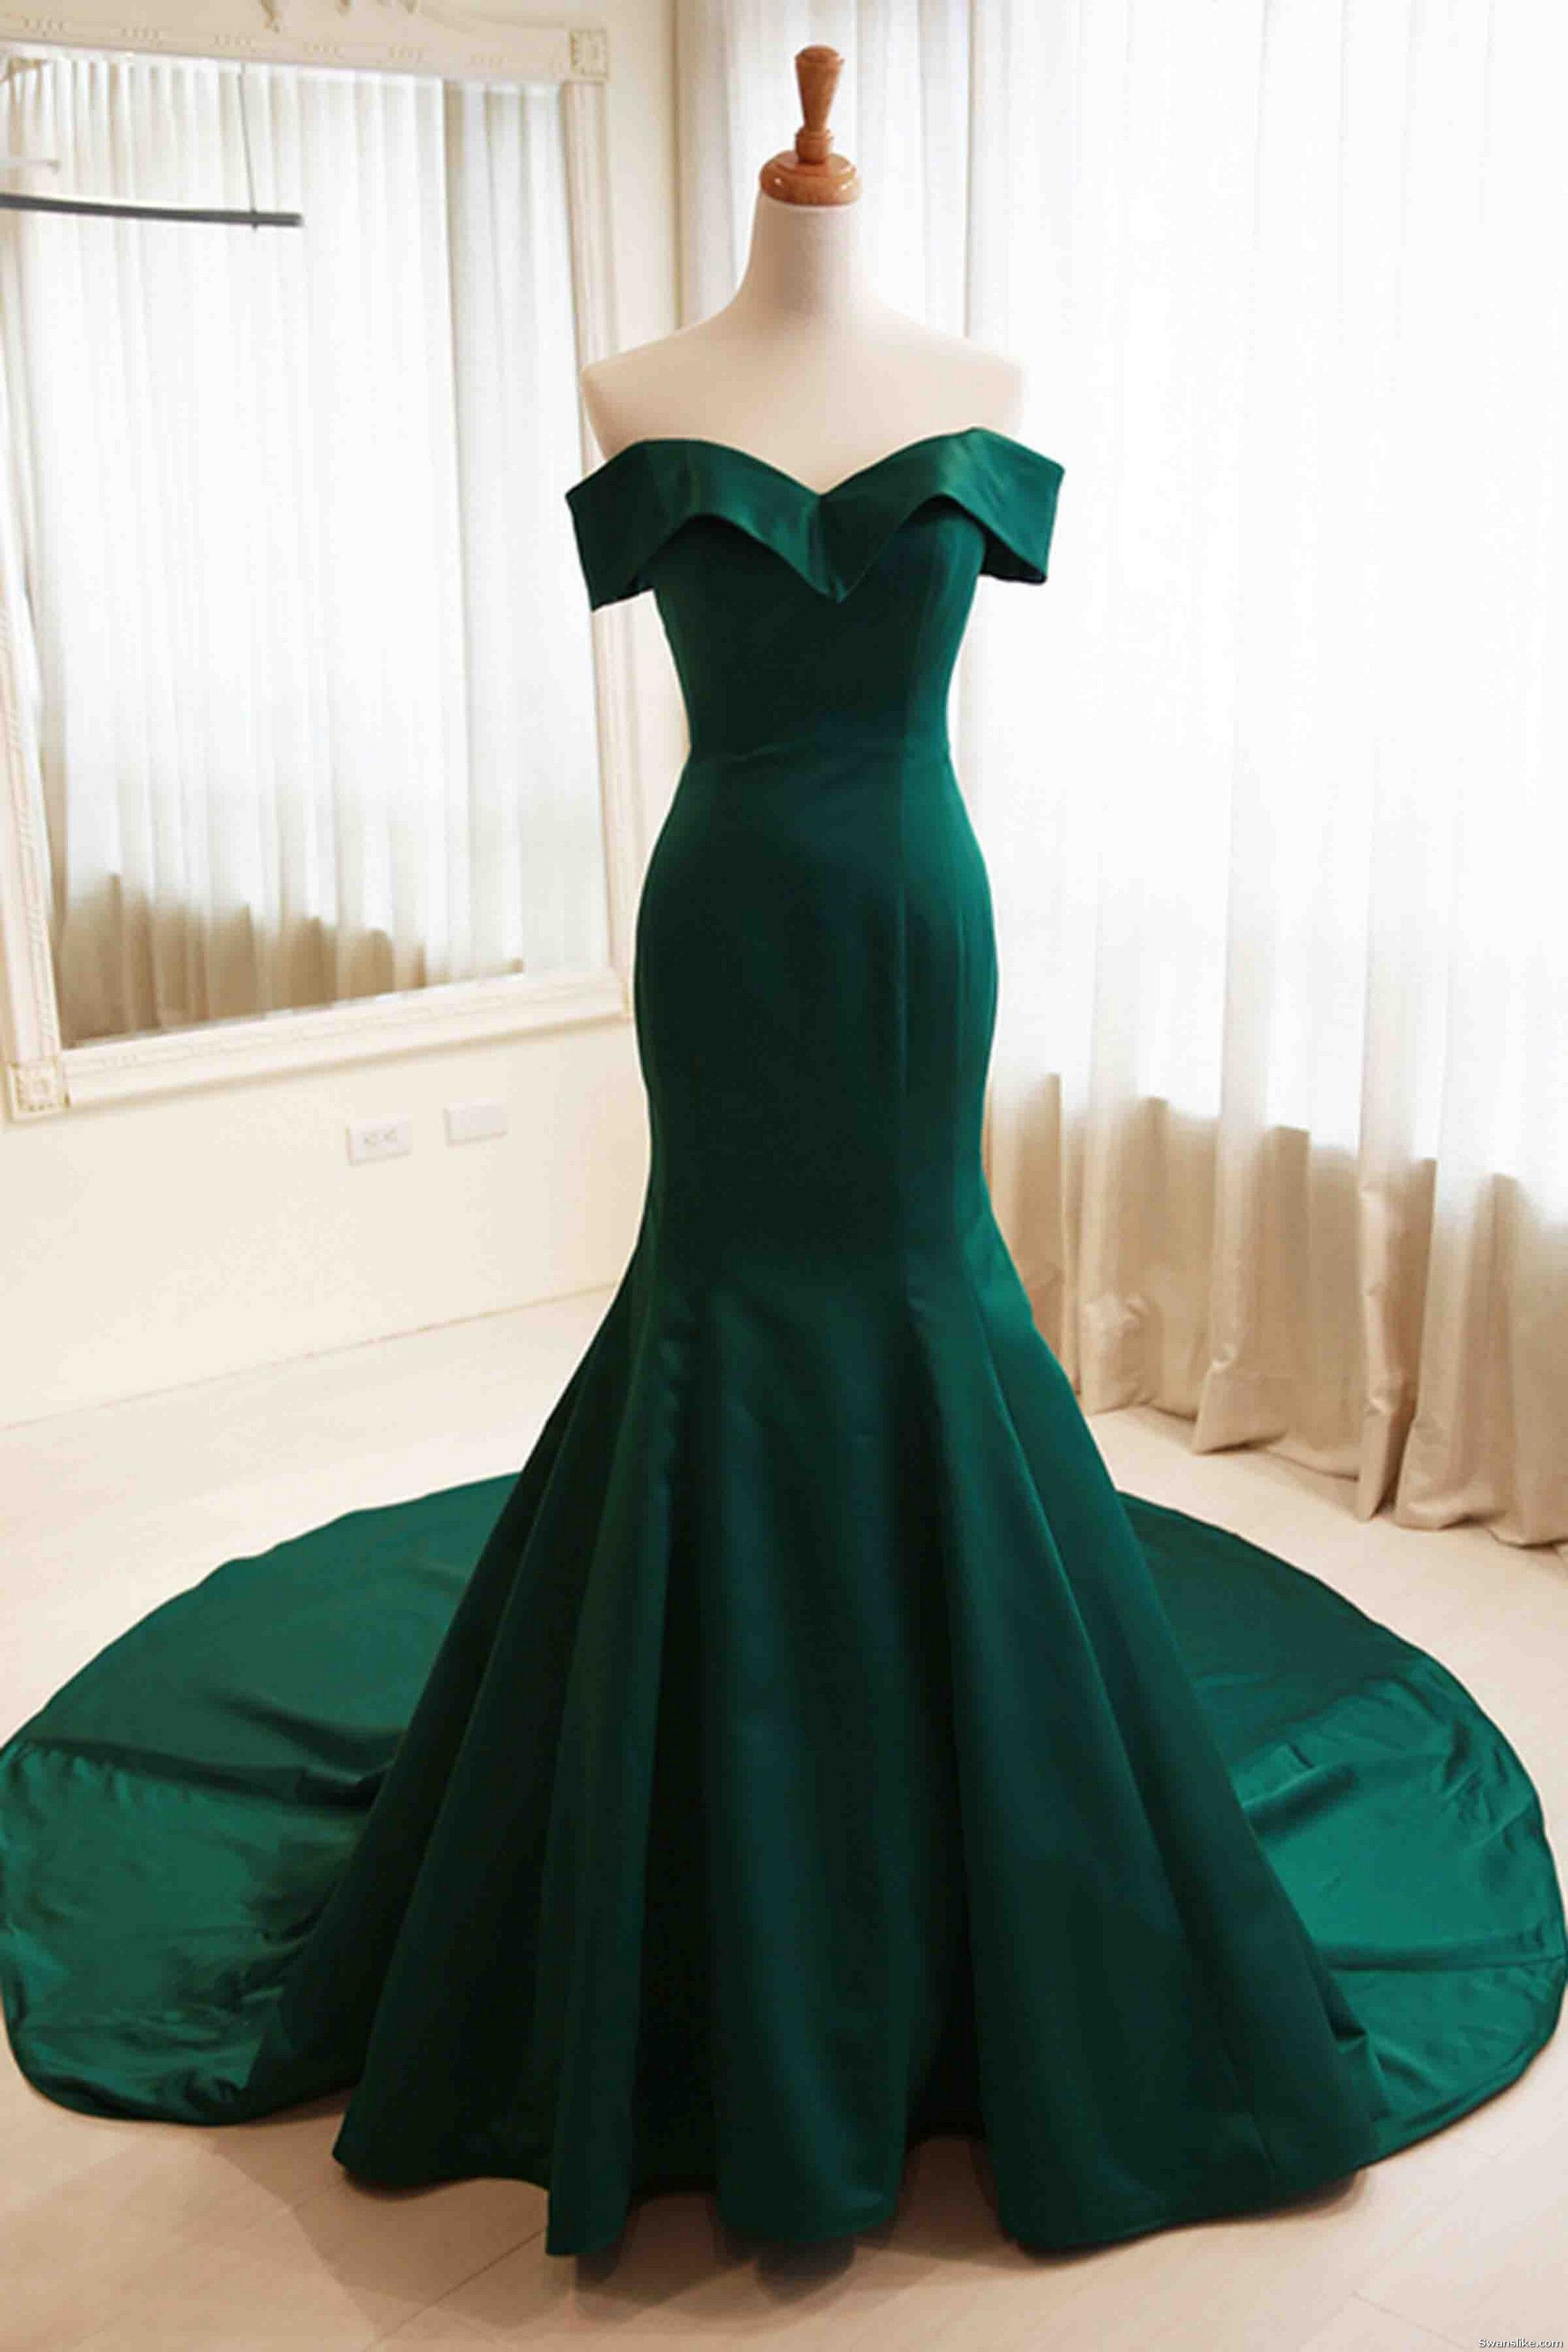 Love Prom Dresses 2018 Lace Evening Dresses Party Cocktail Night